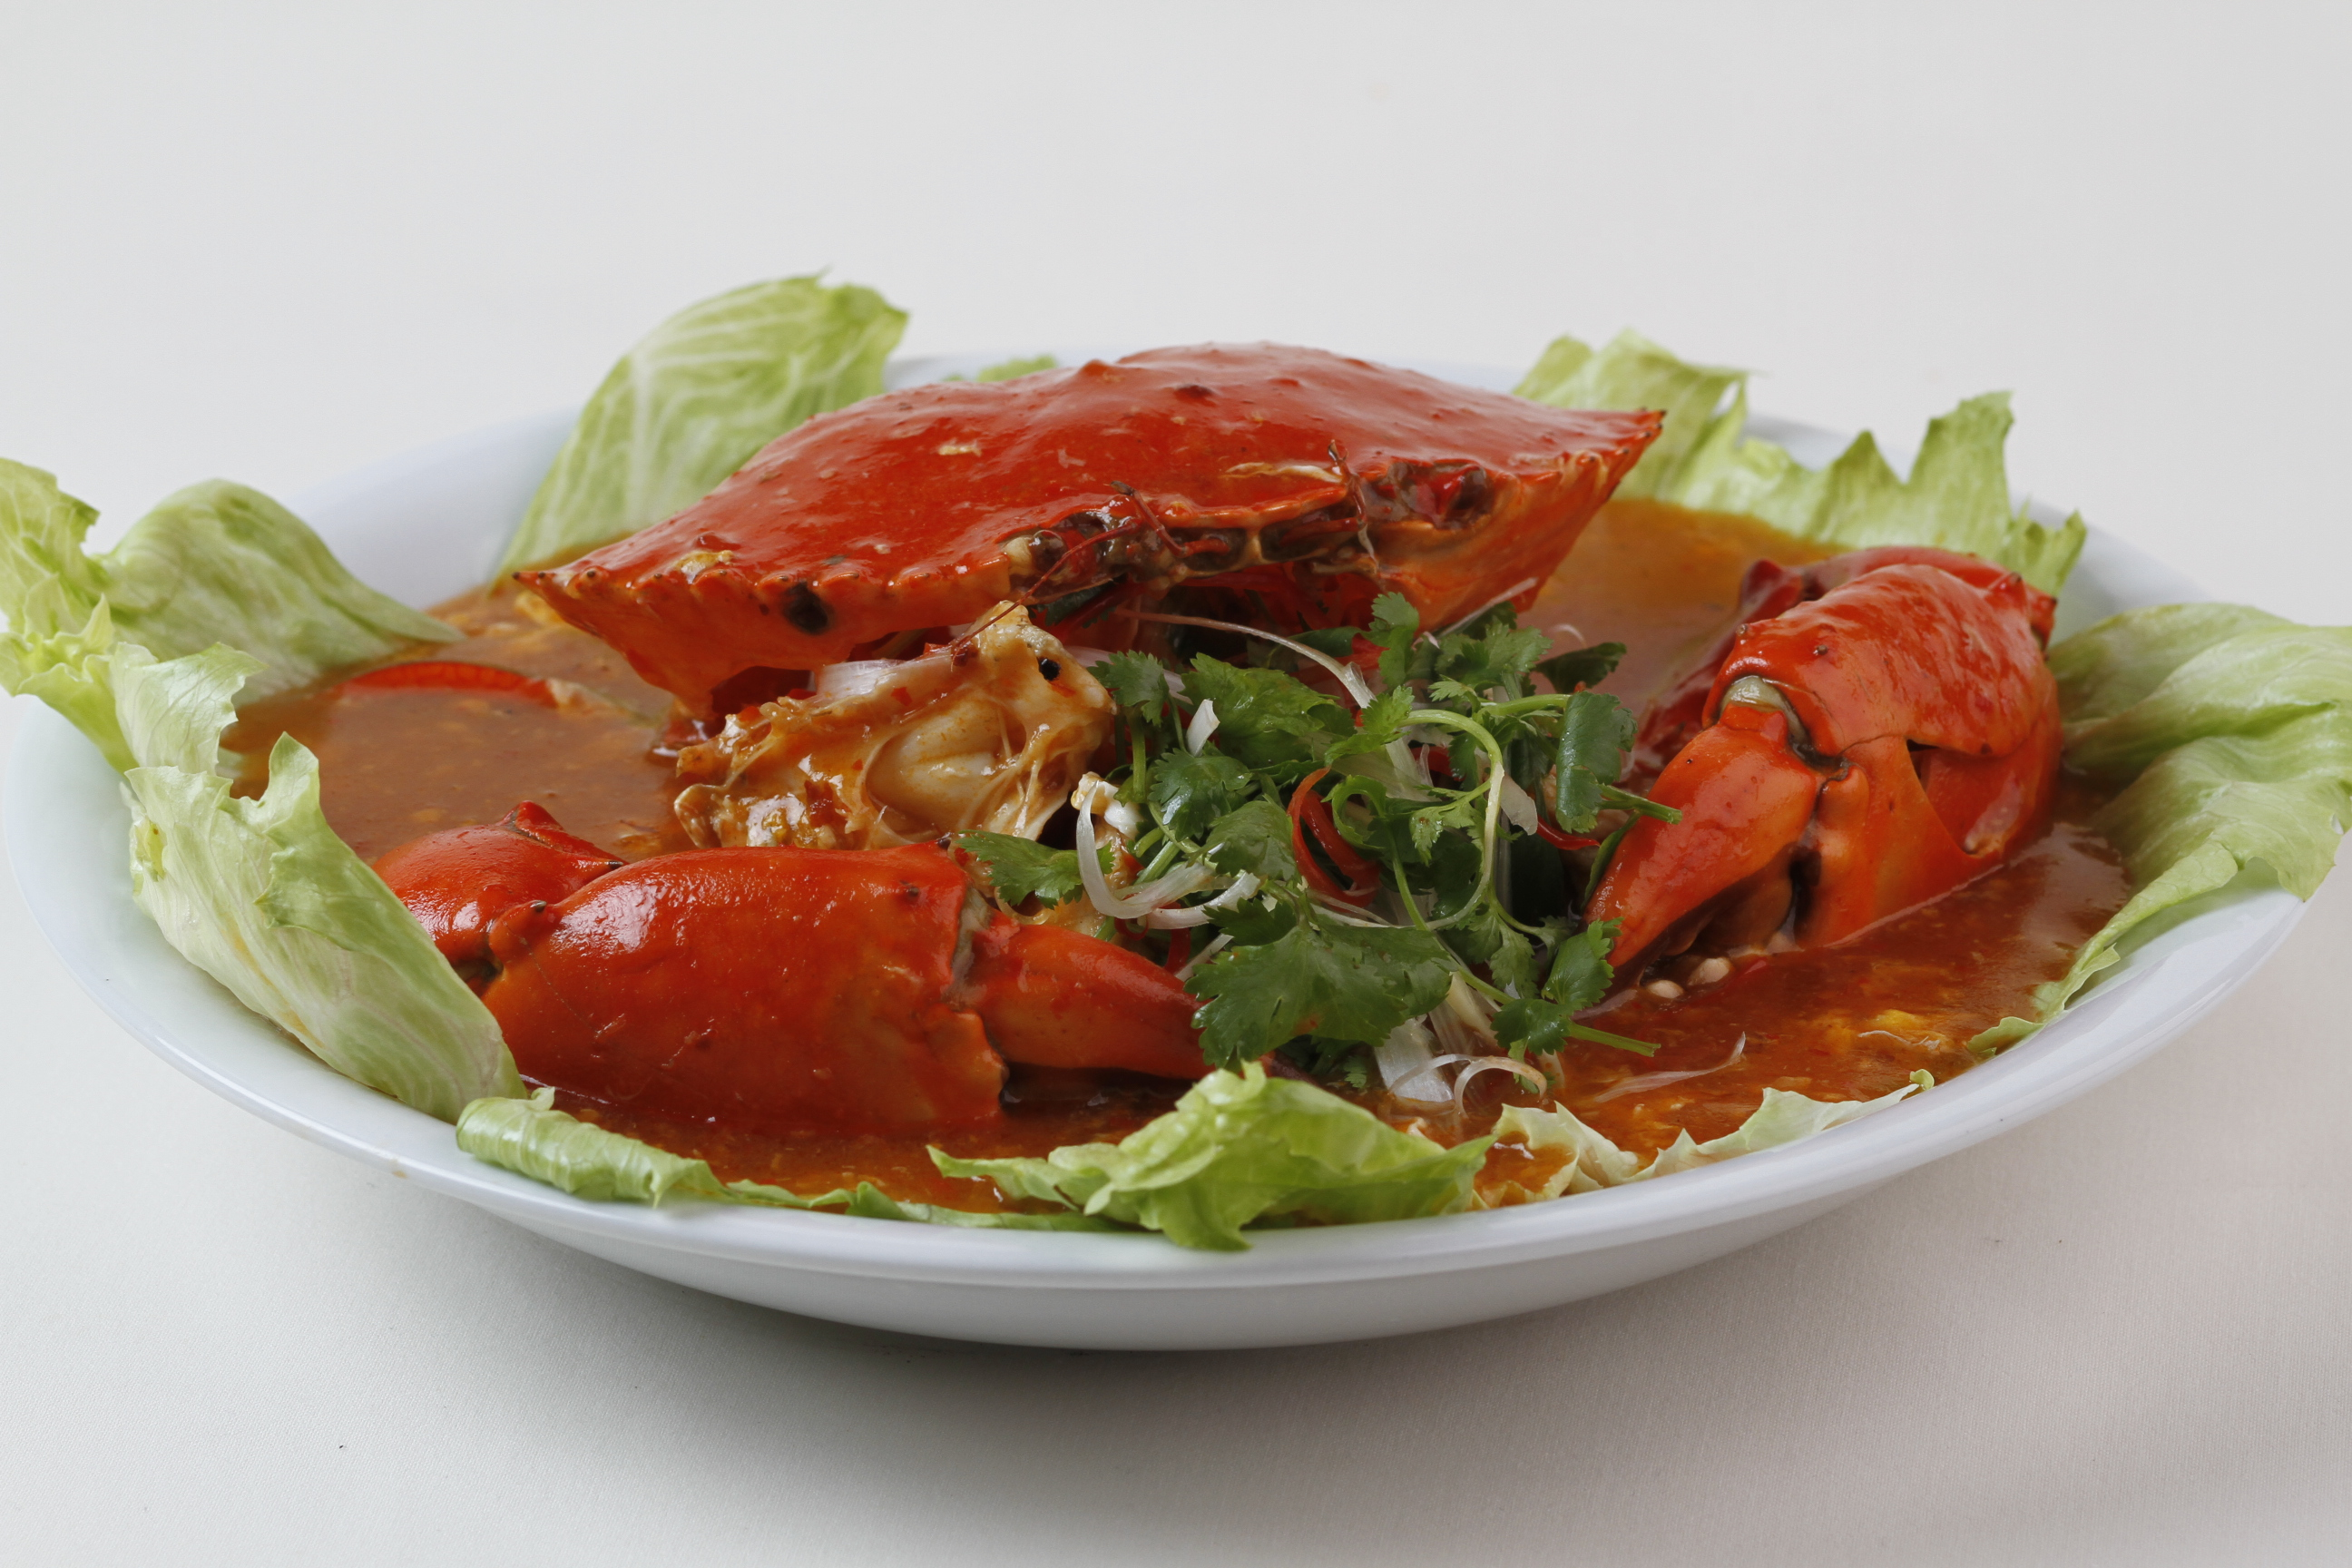 Food Gallery - Ming Kee Live Seafood Restaurant